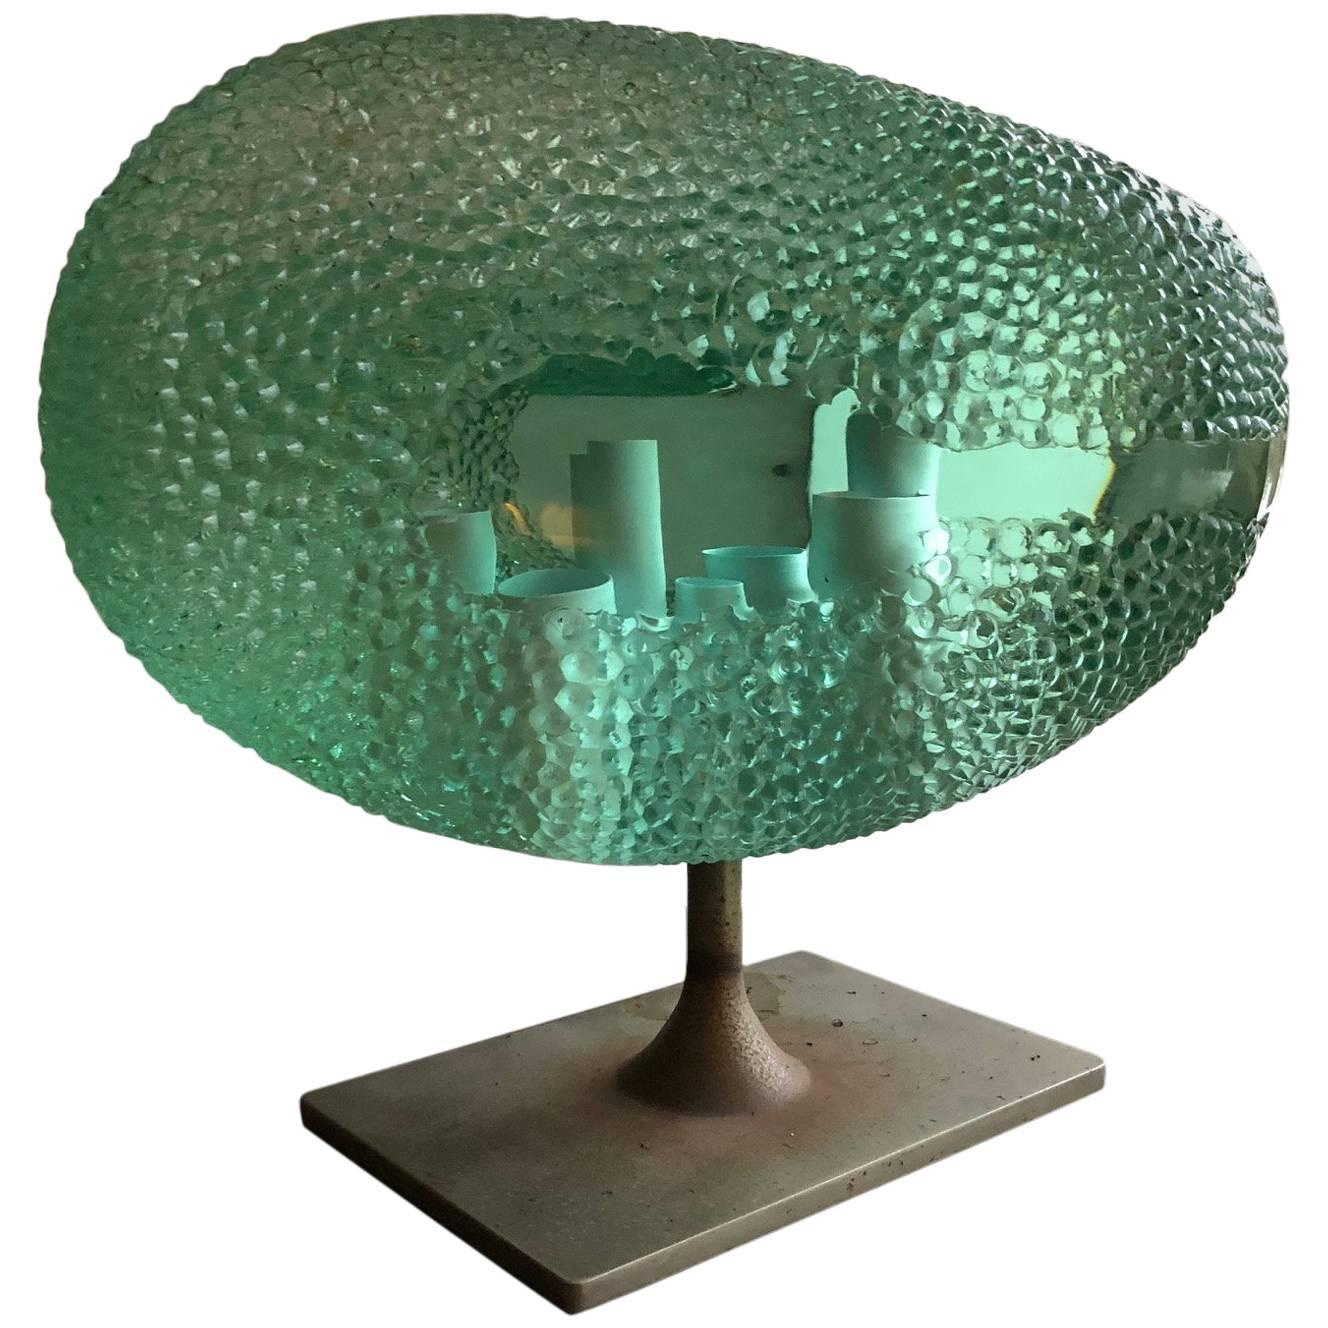 Rare Sculpture from Luciano Vistosi, Signed and Dated 1968